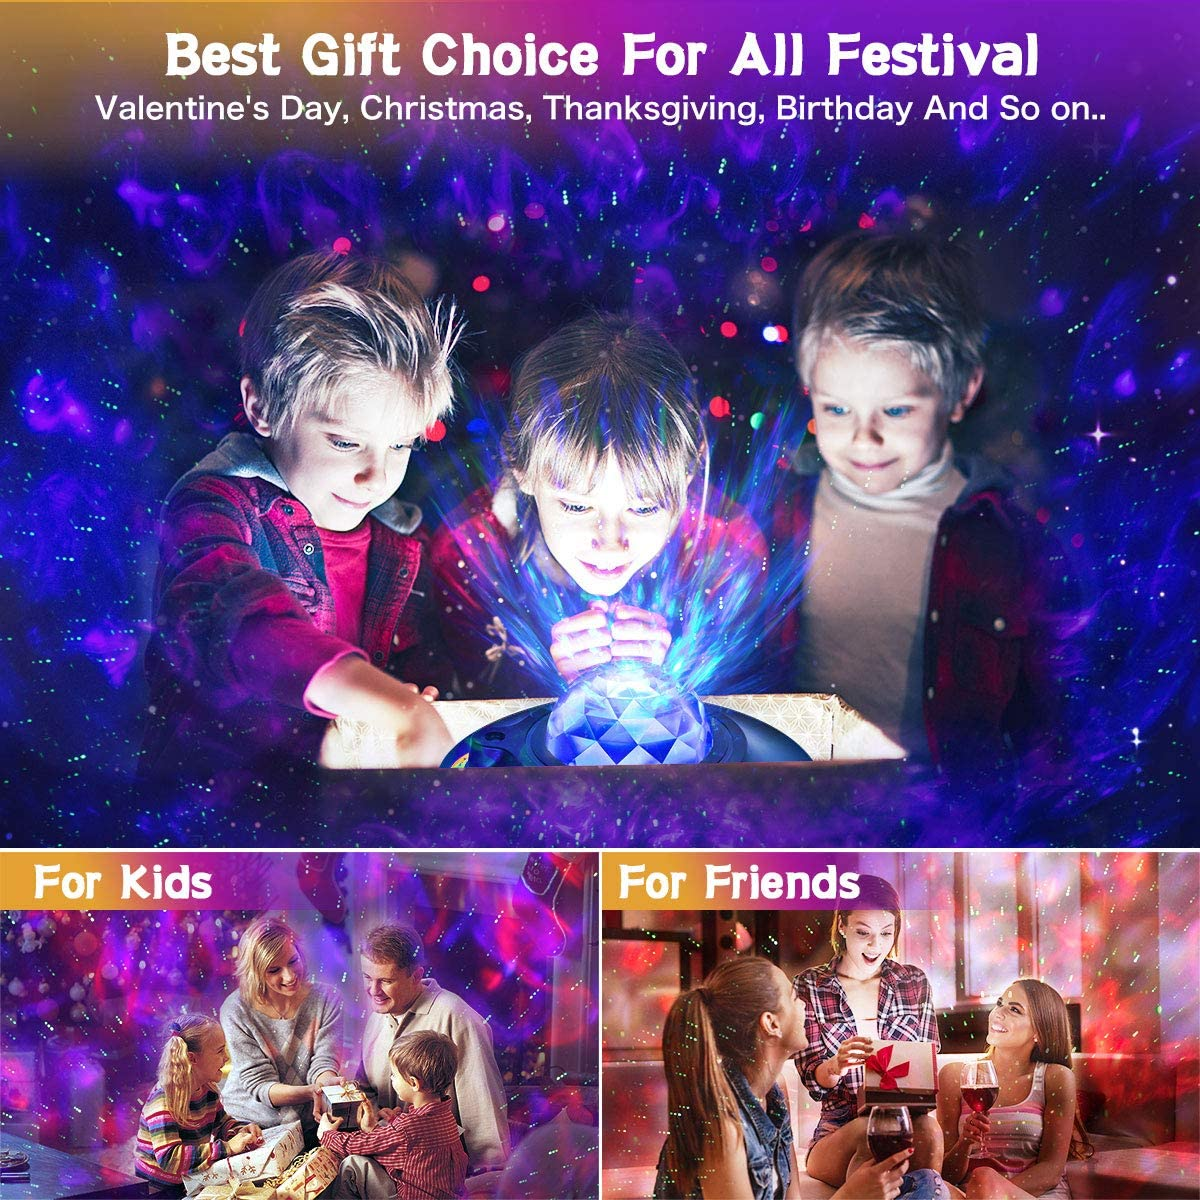 Remote Rotating Cloud Light for Kids Adults Bedroom Decoration Best Christmas Birthday Gifts Star Galaxy Cove Projector Sky Night Light Ocean Wave Projector with Bluetooth Speaker